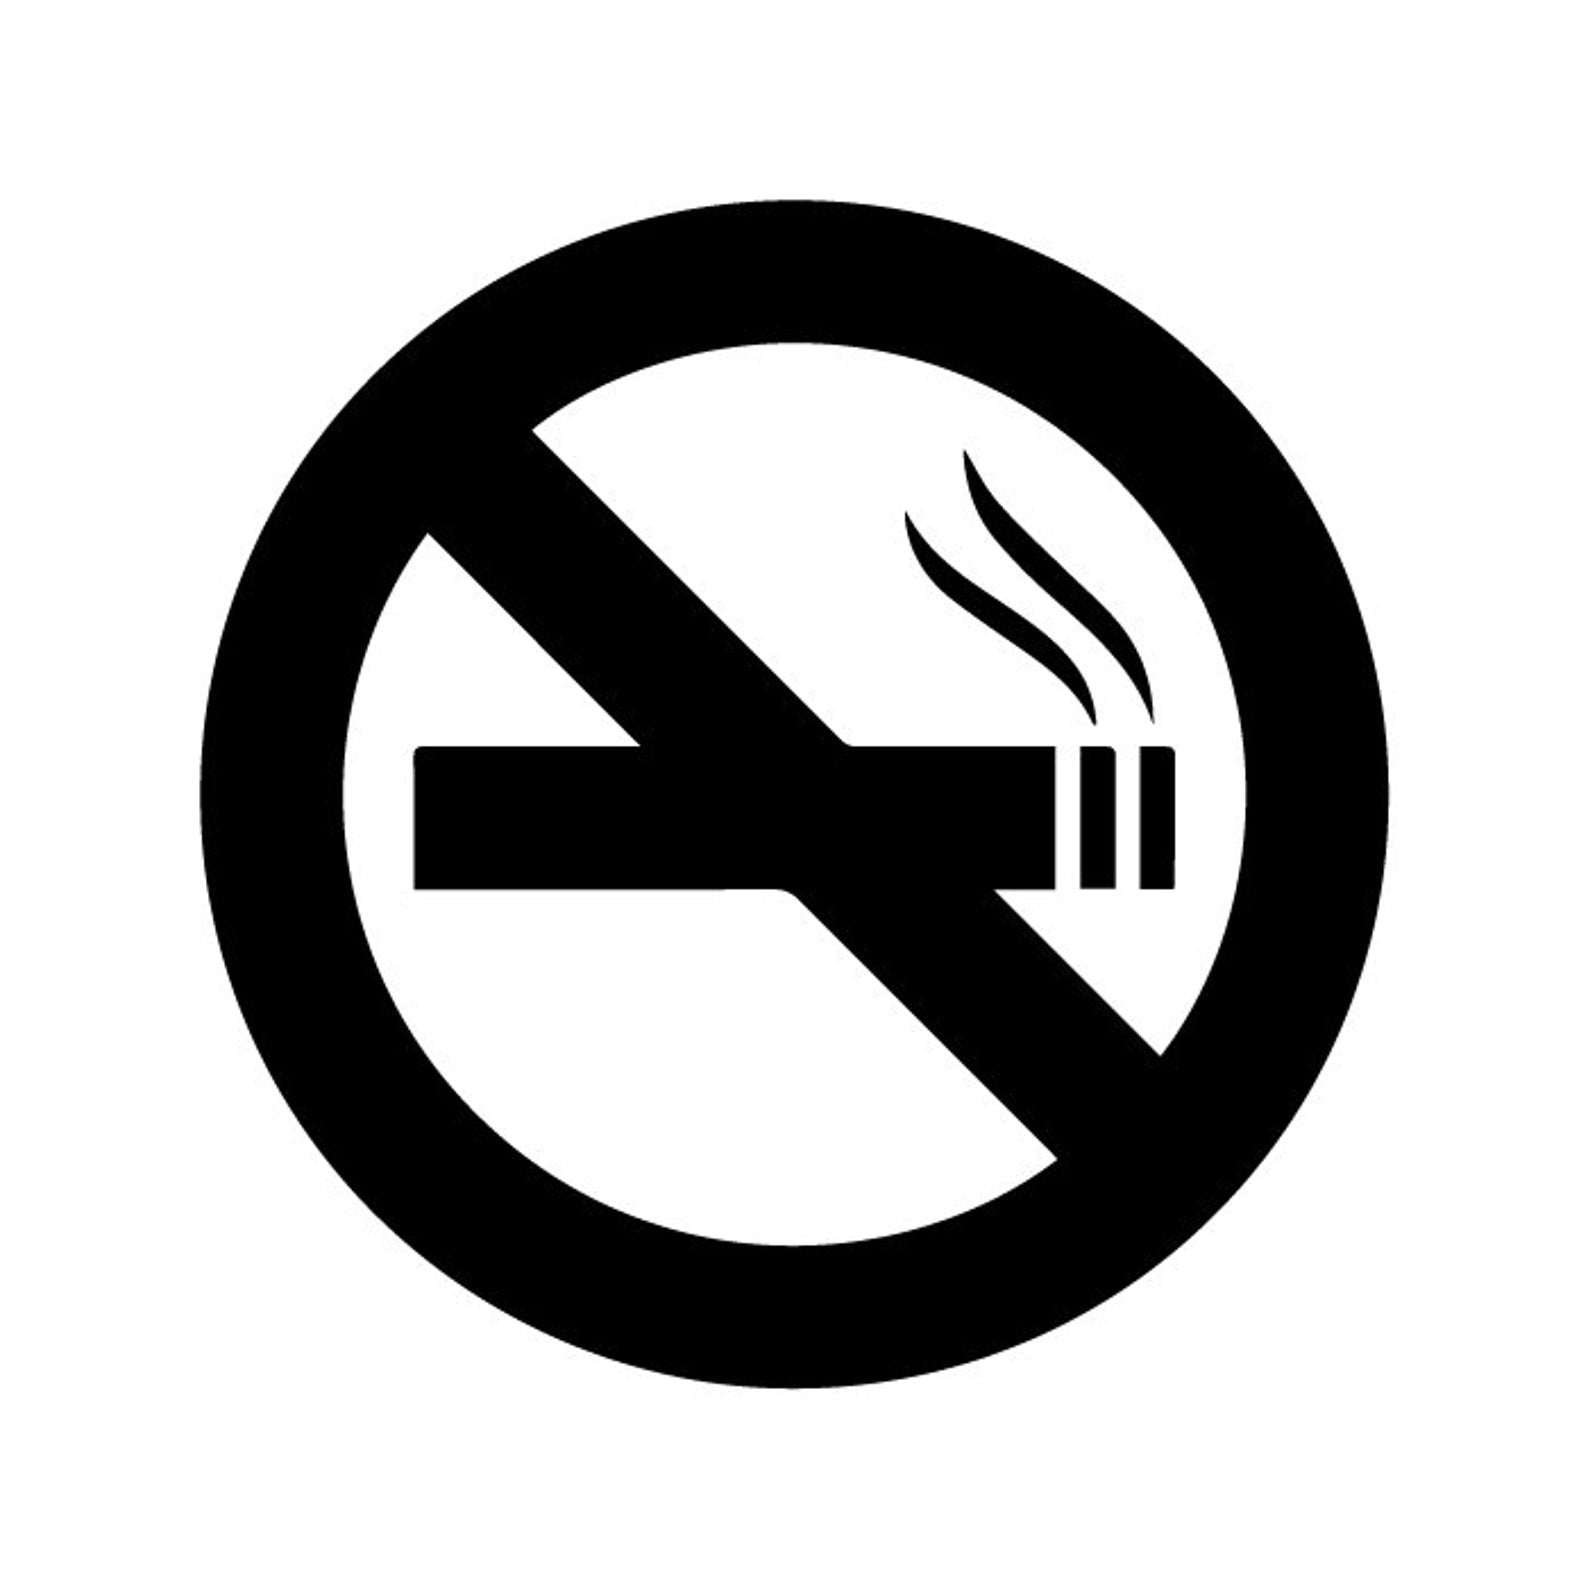 No Smoking Sign Logo Icon Vinyl Decal Sticker - Choose Size & Color v2